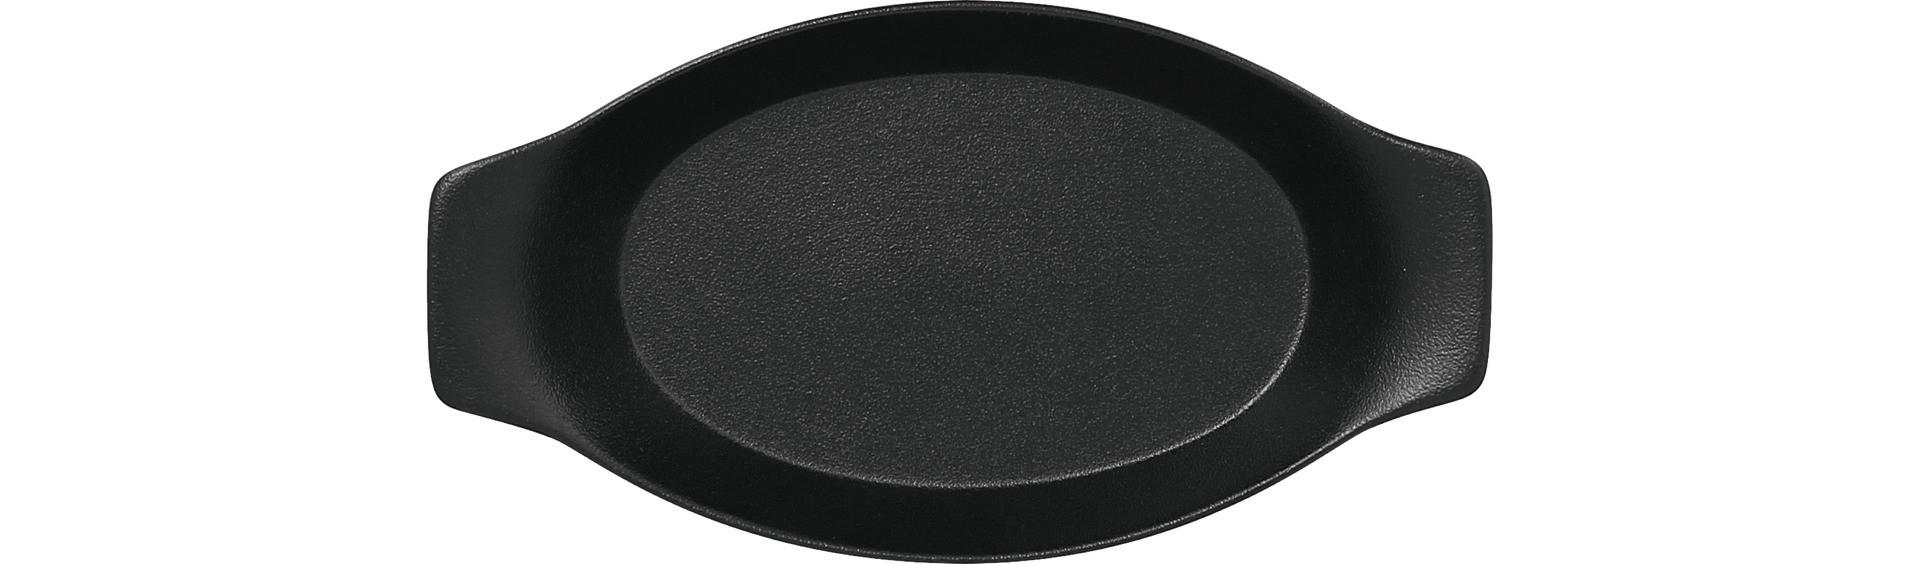 Neofusion, Schale oval mit Griffen 300 x 160 mm / 0,78 l volcano